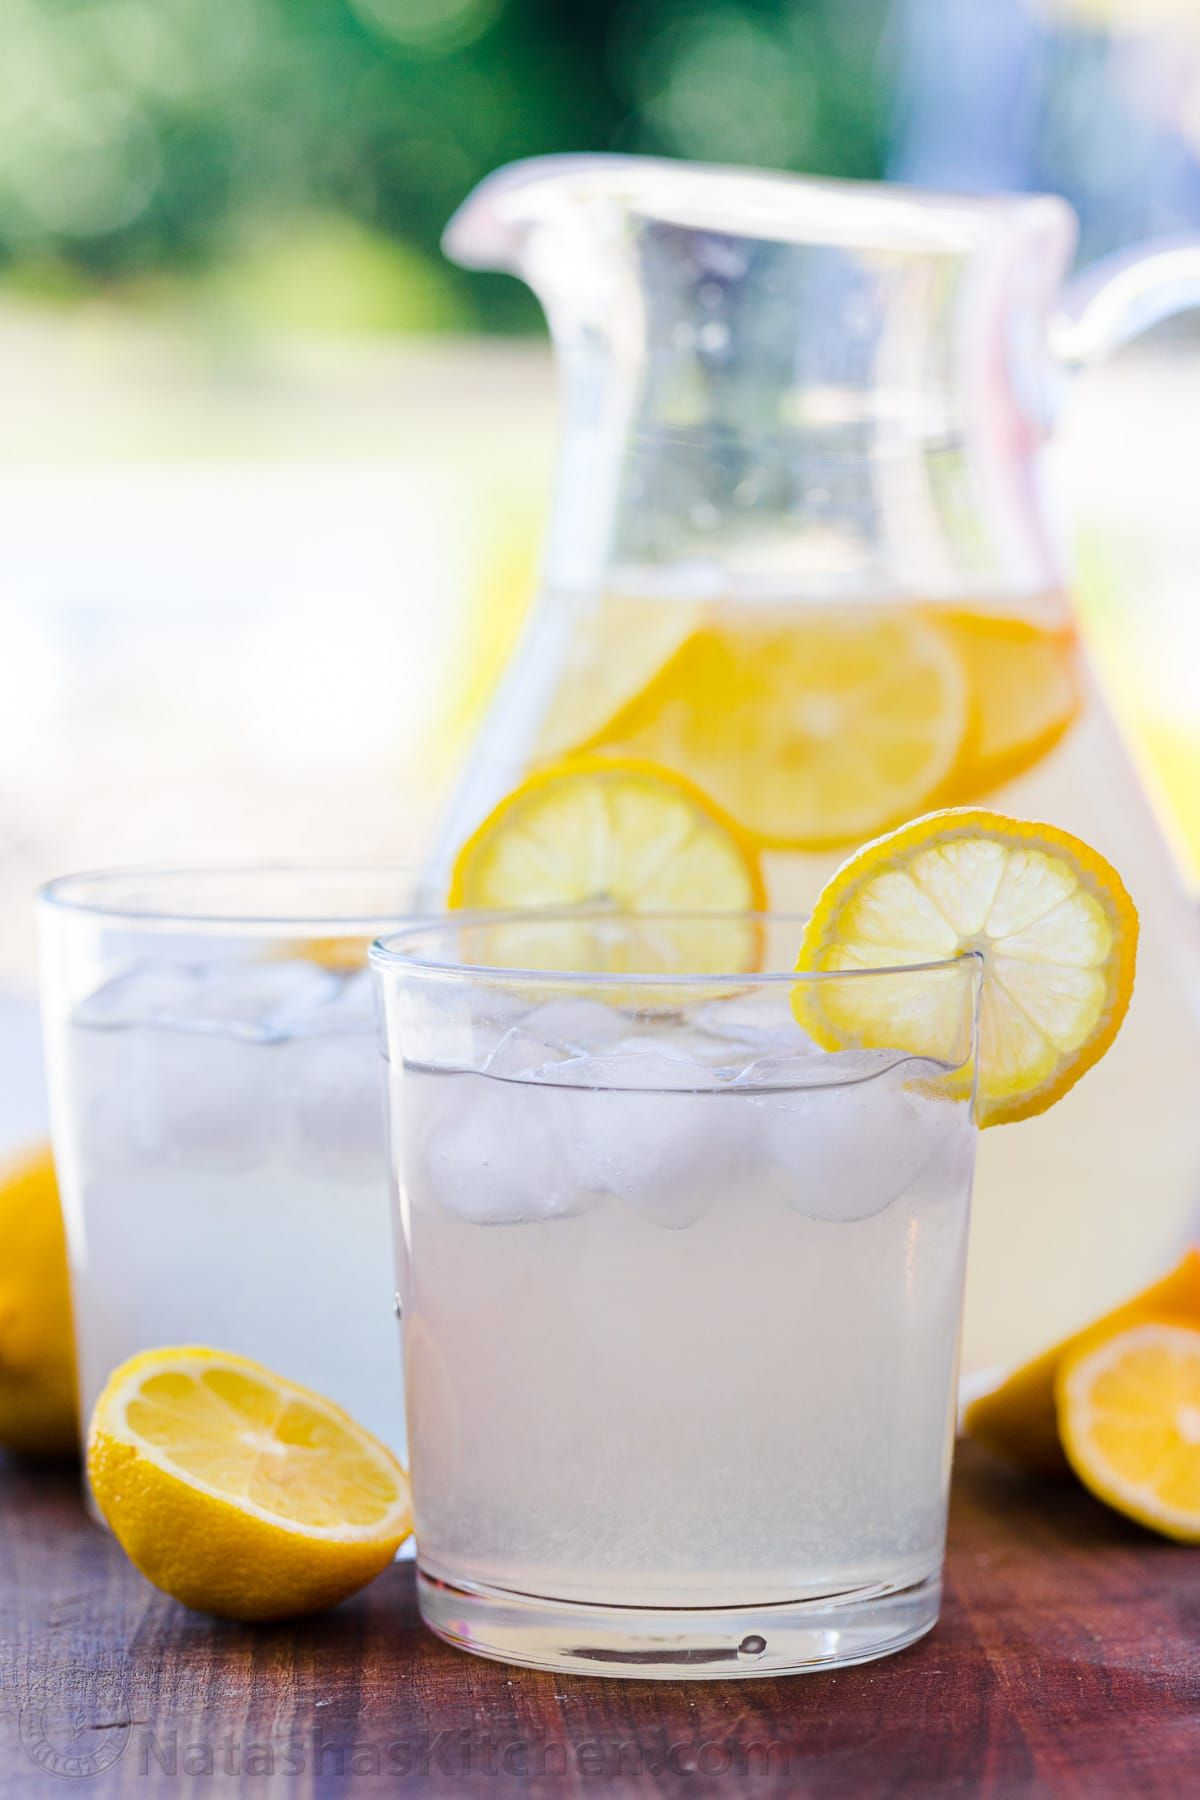 Lemonade is so refreshing and timeless. You won't believe